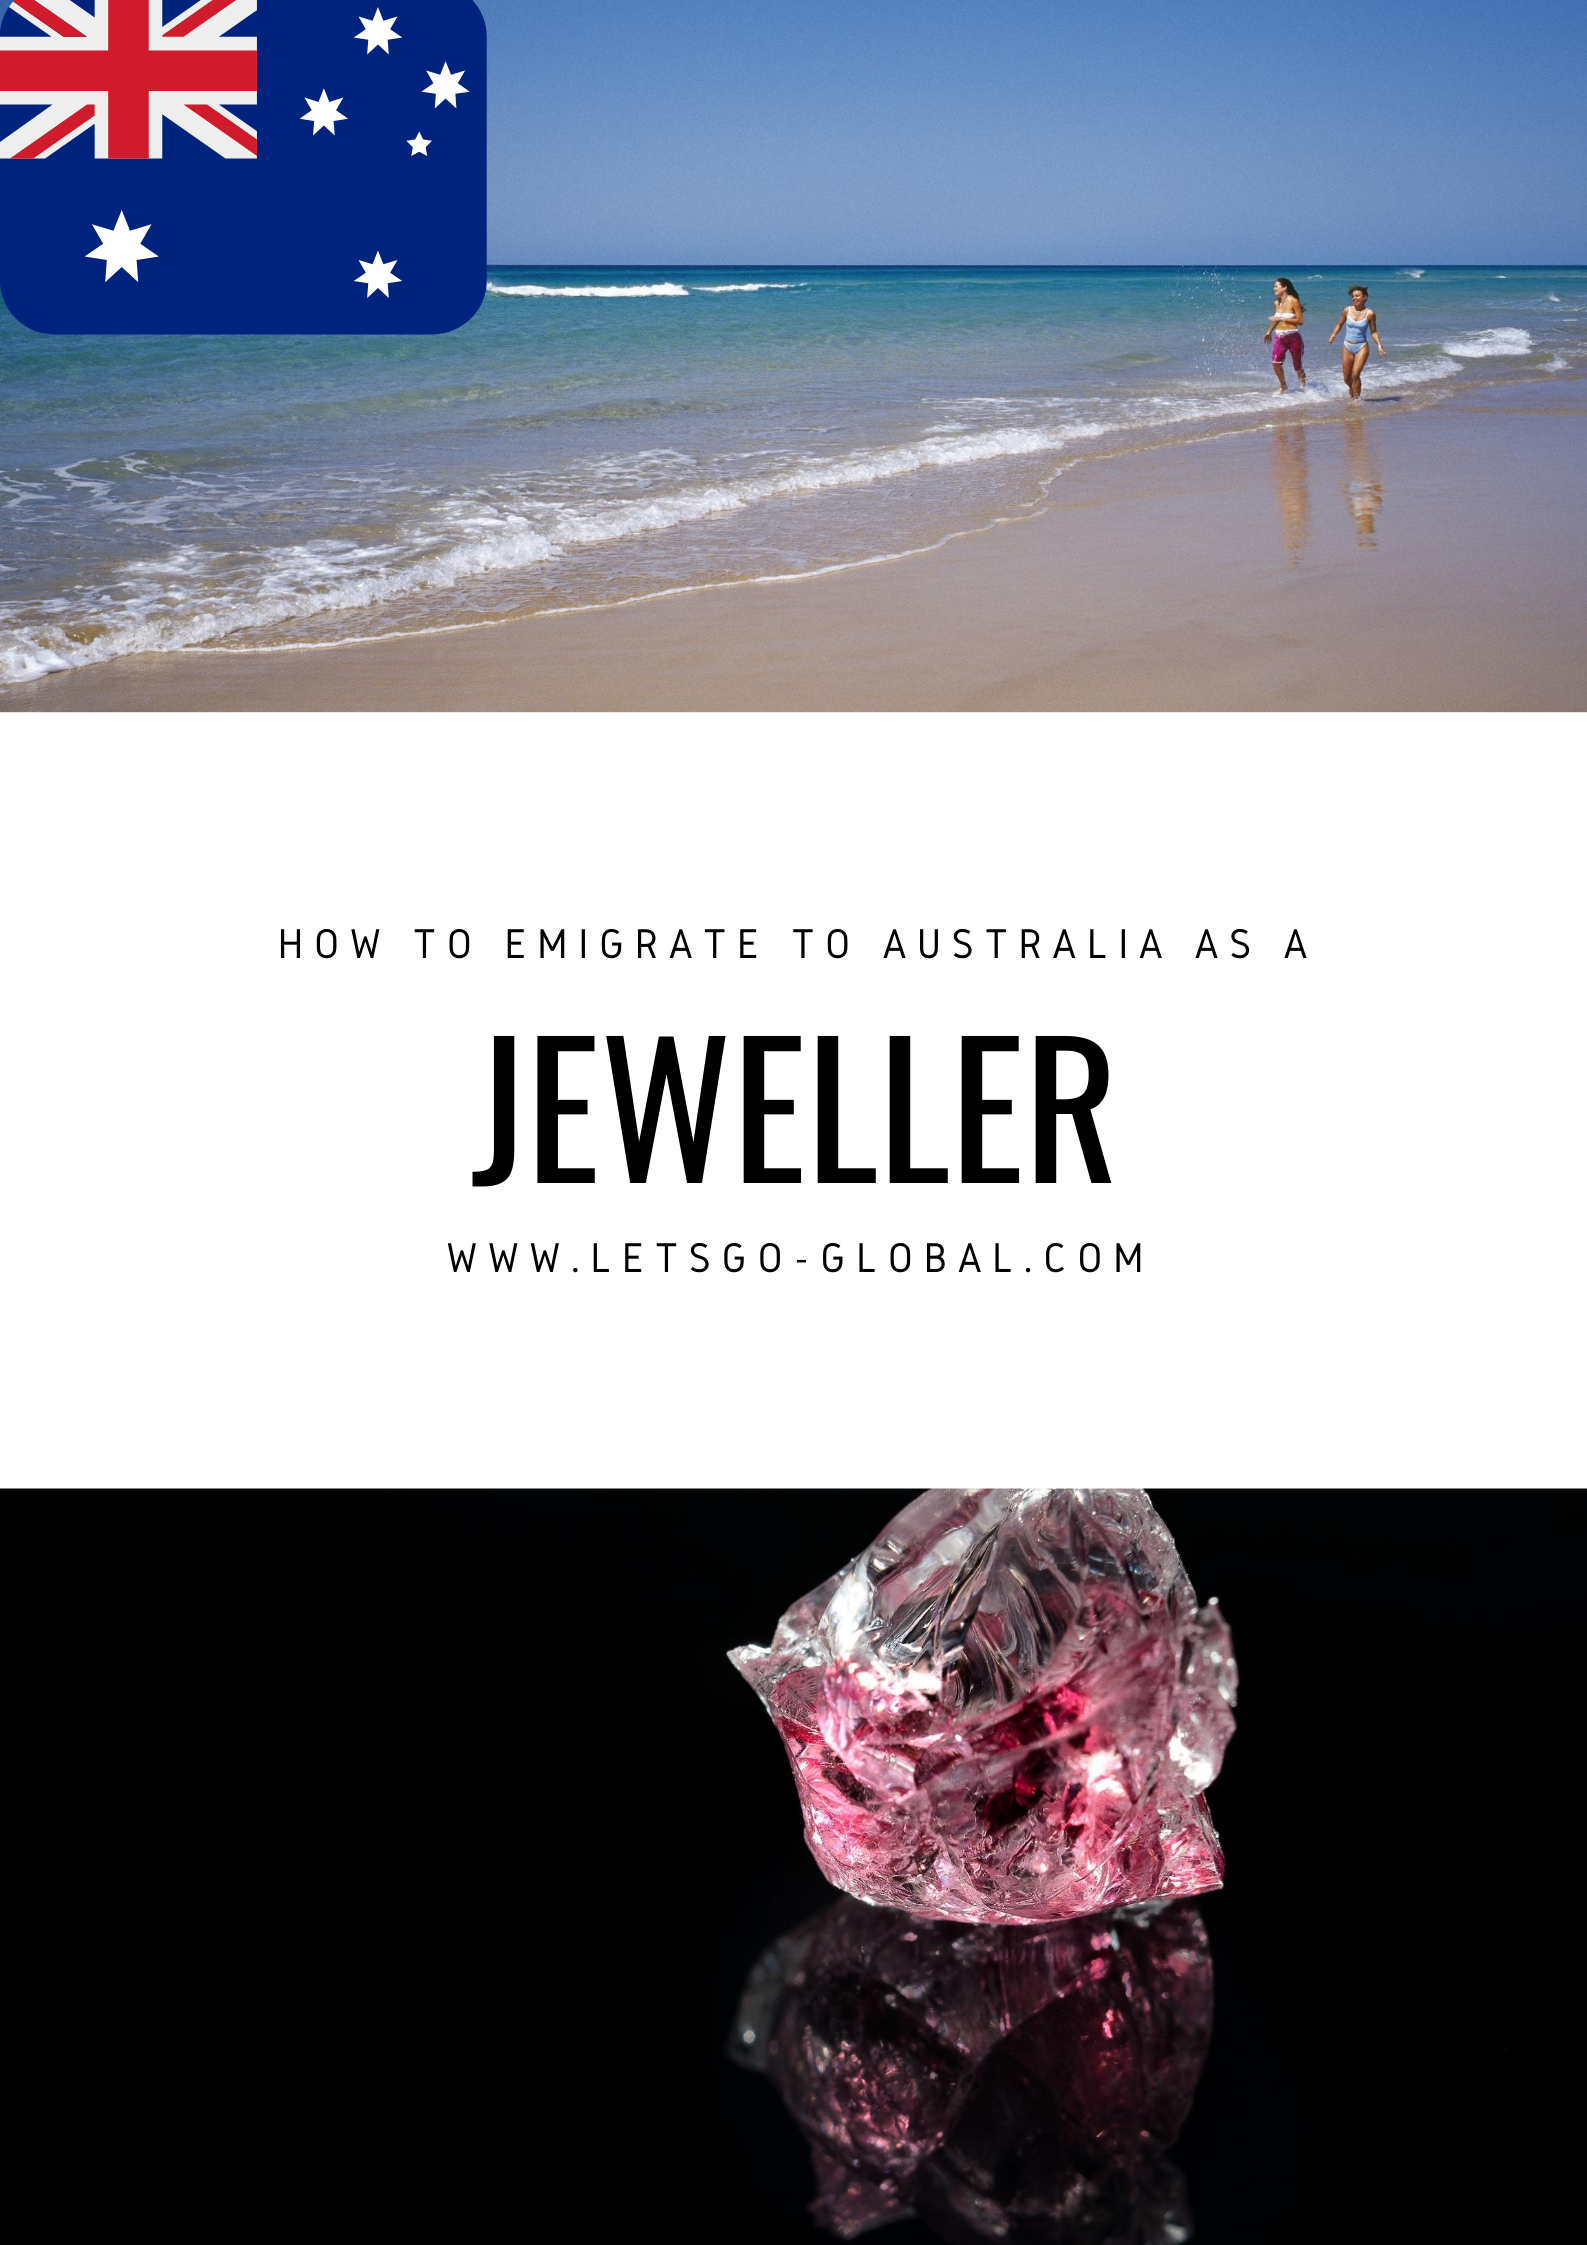 Migrate to Australia as a Jeweller